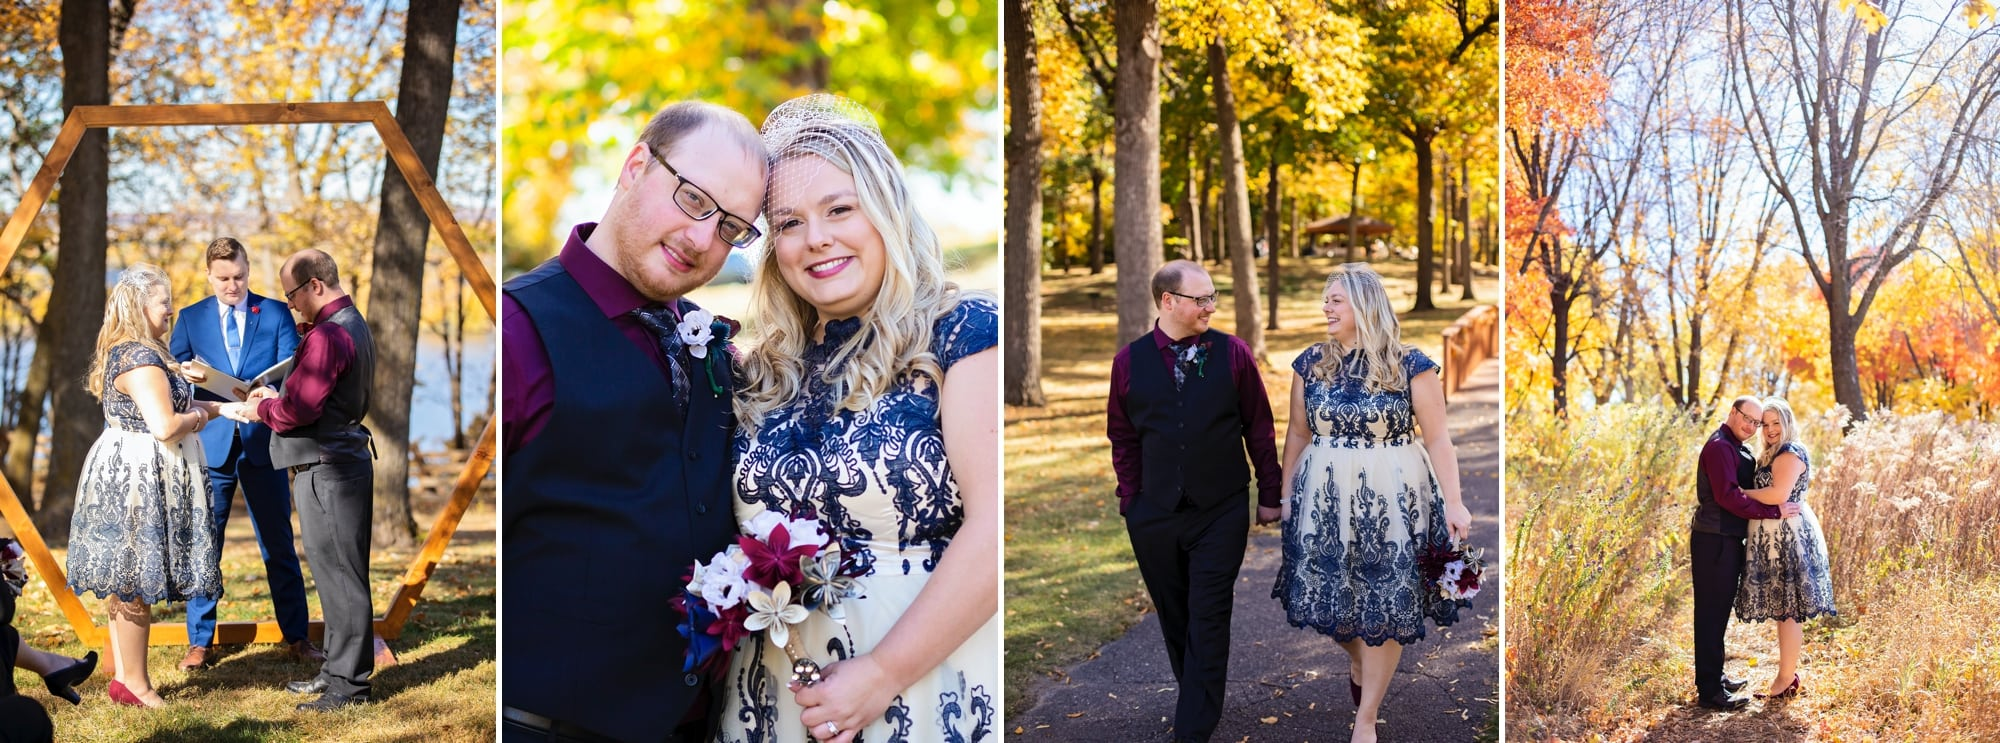 Ashley and Randy's autumn wedding ceremony at Schaar's Bluff in Hastings, Minnesota.